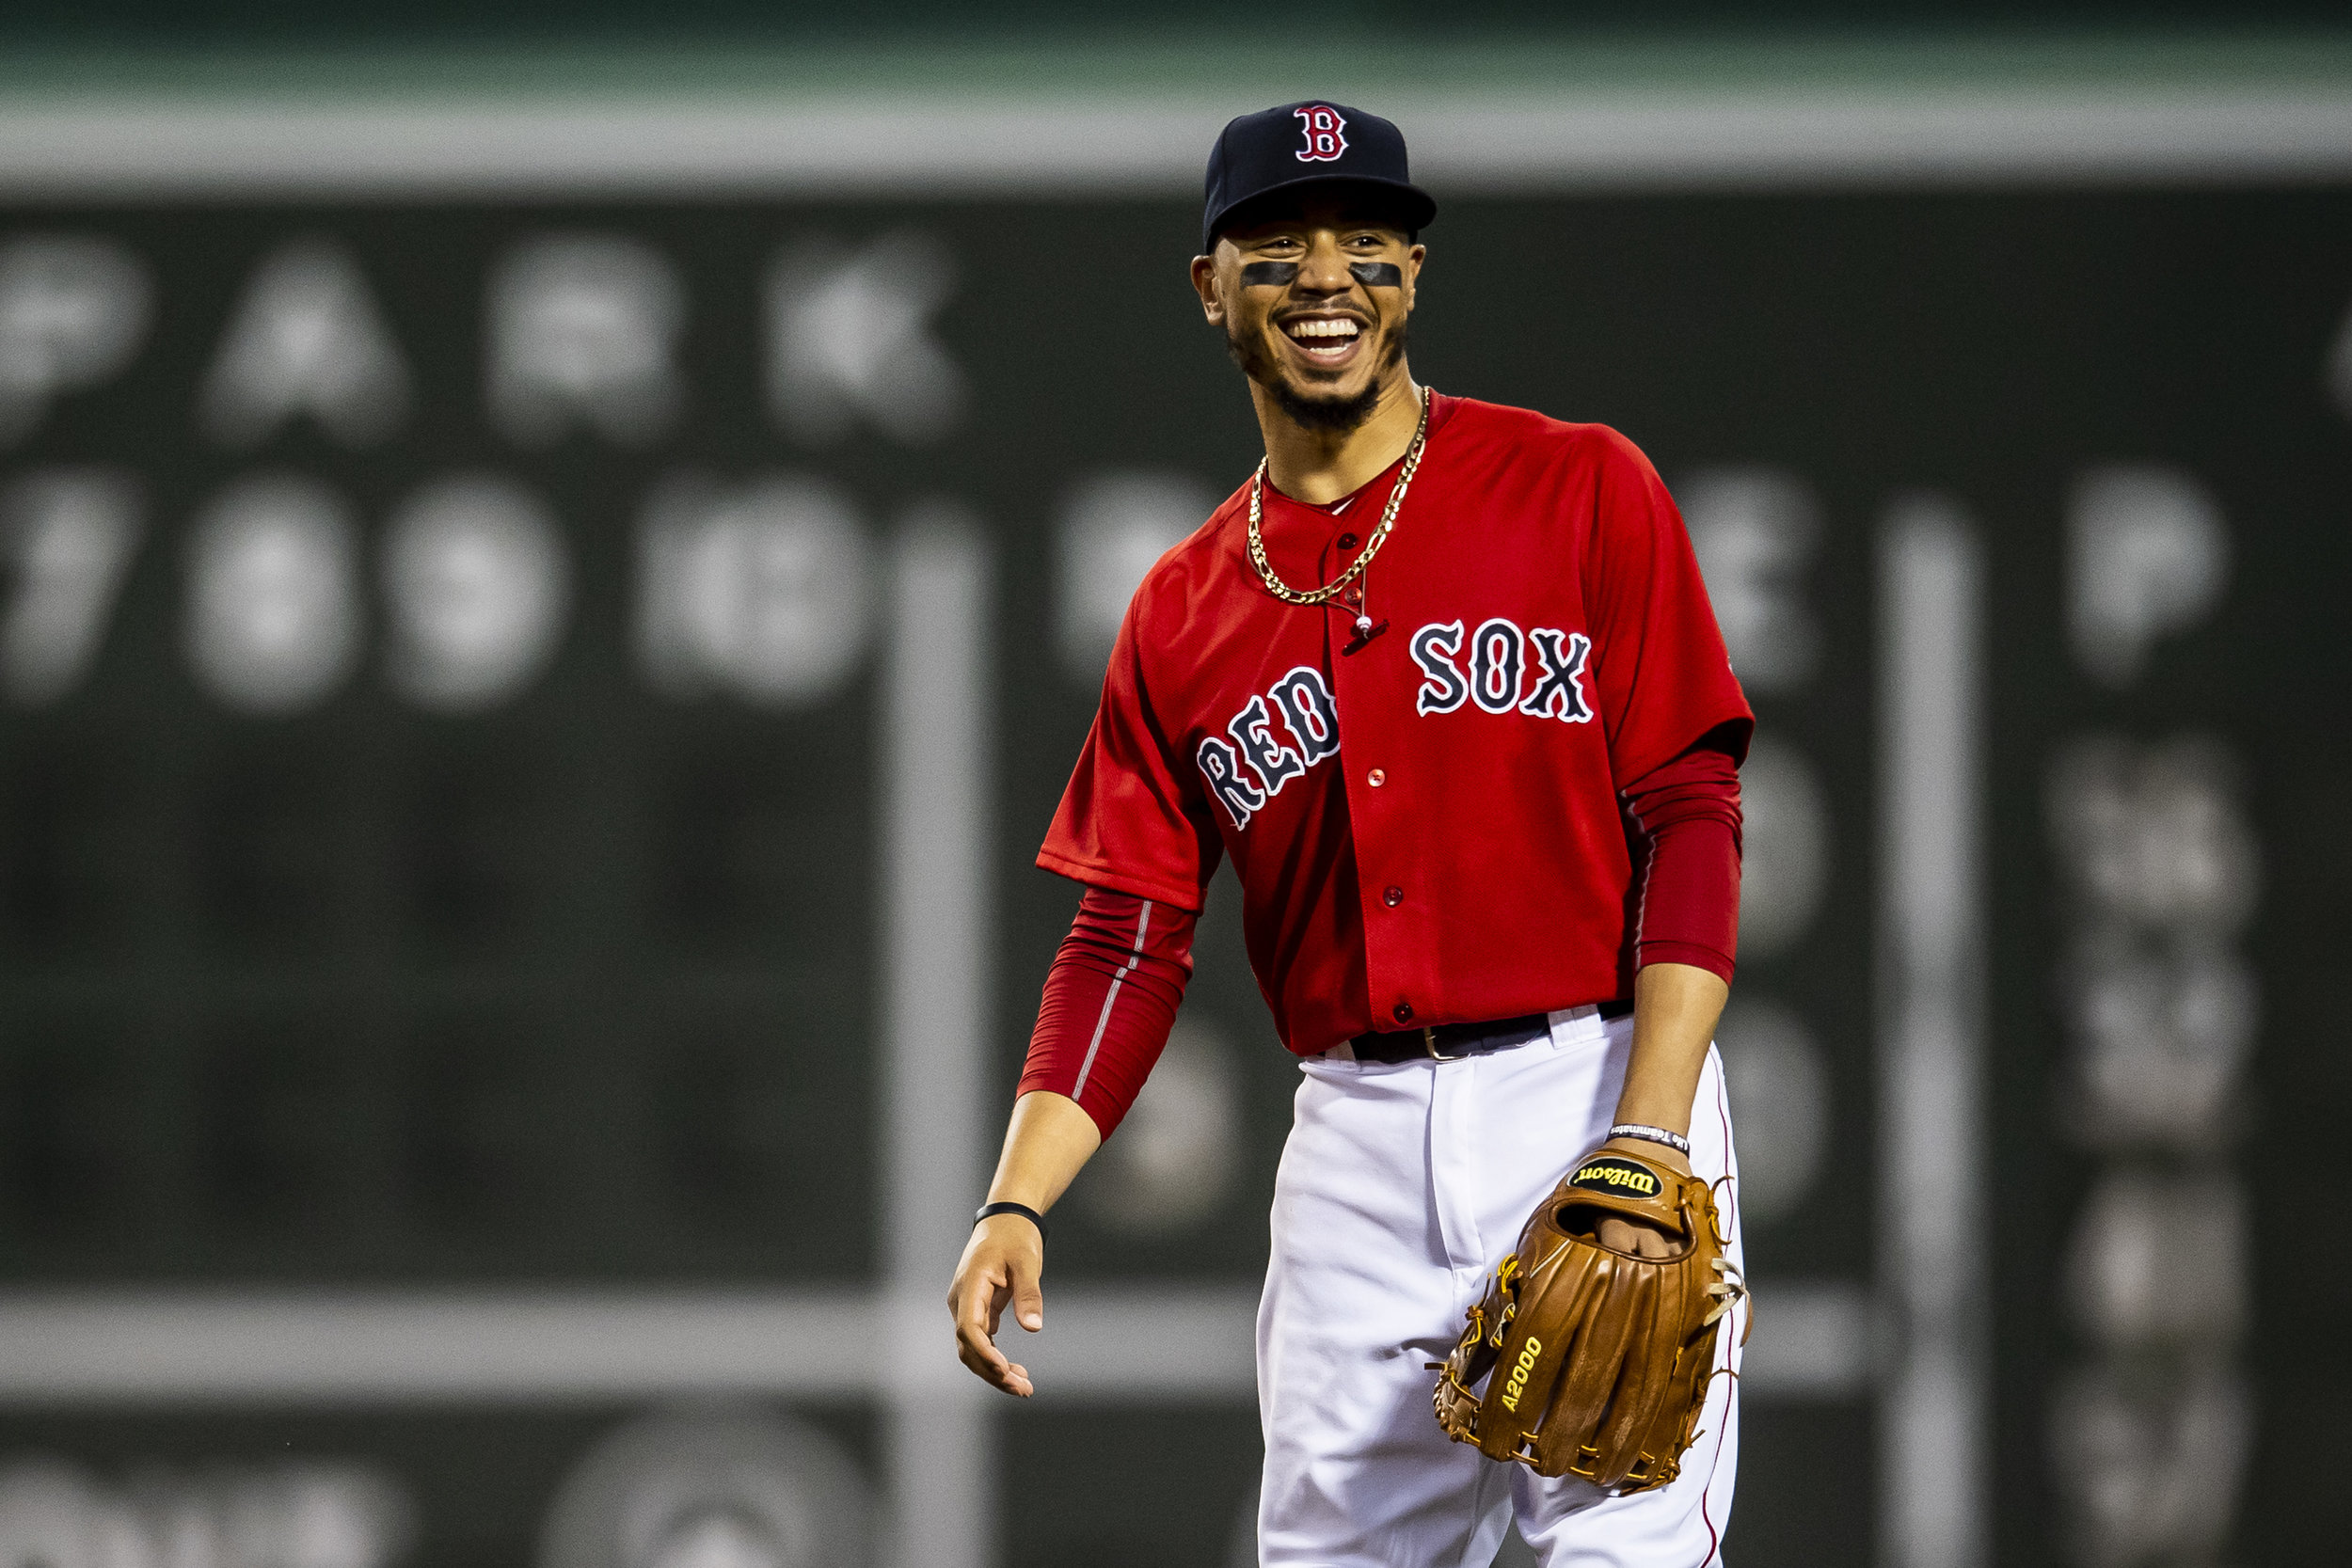 August 3, 2018, Boston, MA: Boston Red Sox second baseman Mookie Betts smiles as the Boston Red Sox face the New York Yankees at Fenway Park in Boston, Massachusetts on Friday, August 3, 2018. (Photo by Matthew Thomas/Boston Red Sox)